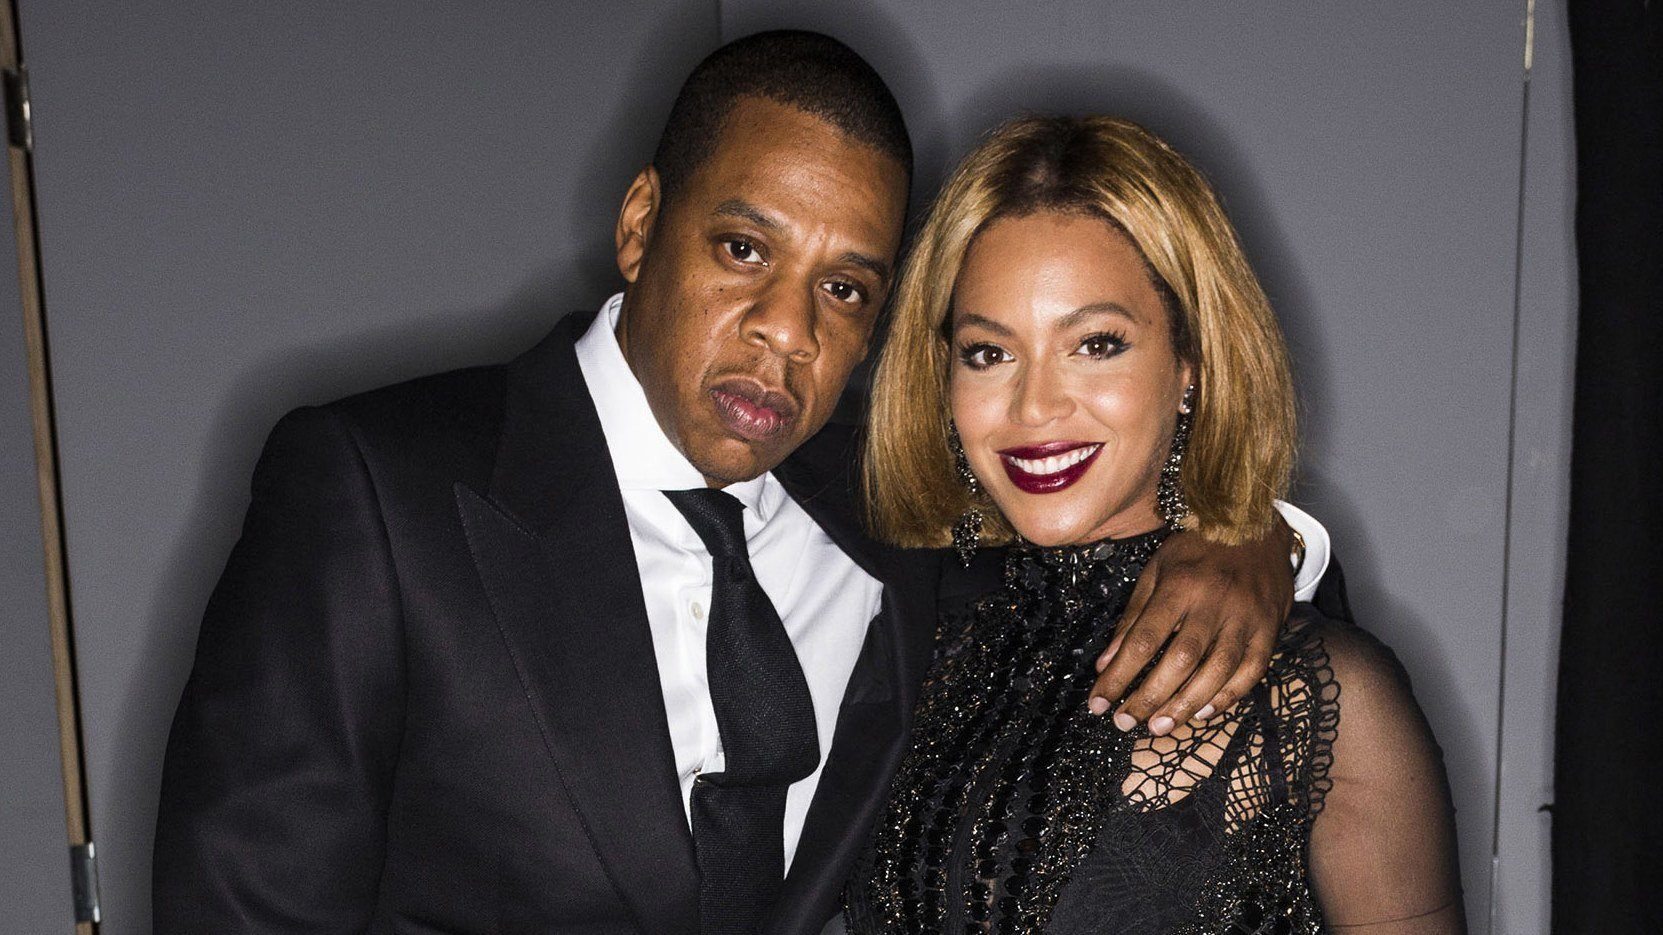 Beyoncé and Jay-Z Just Shared Some Very Naked, Very Intimate Photos